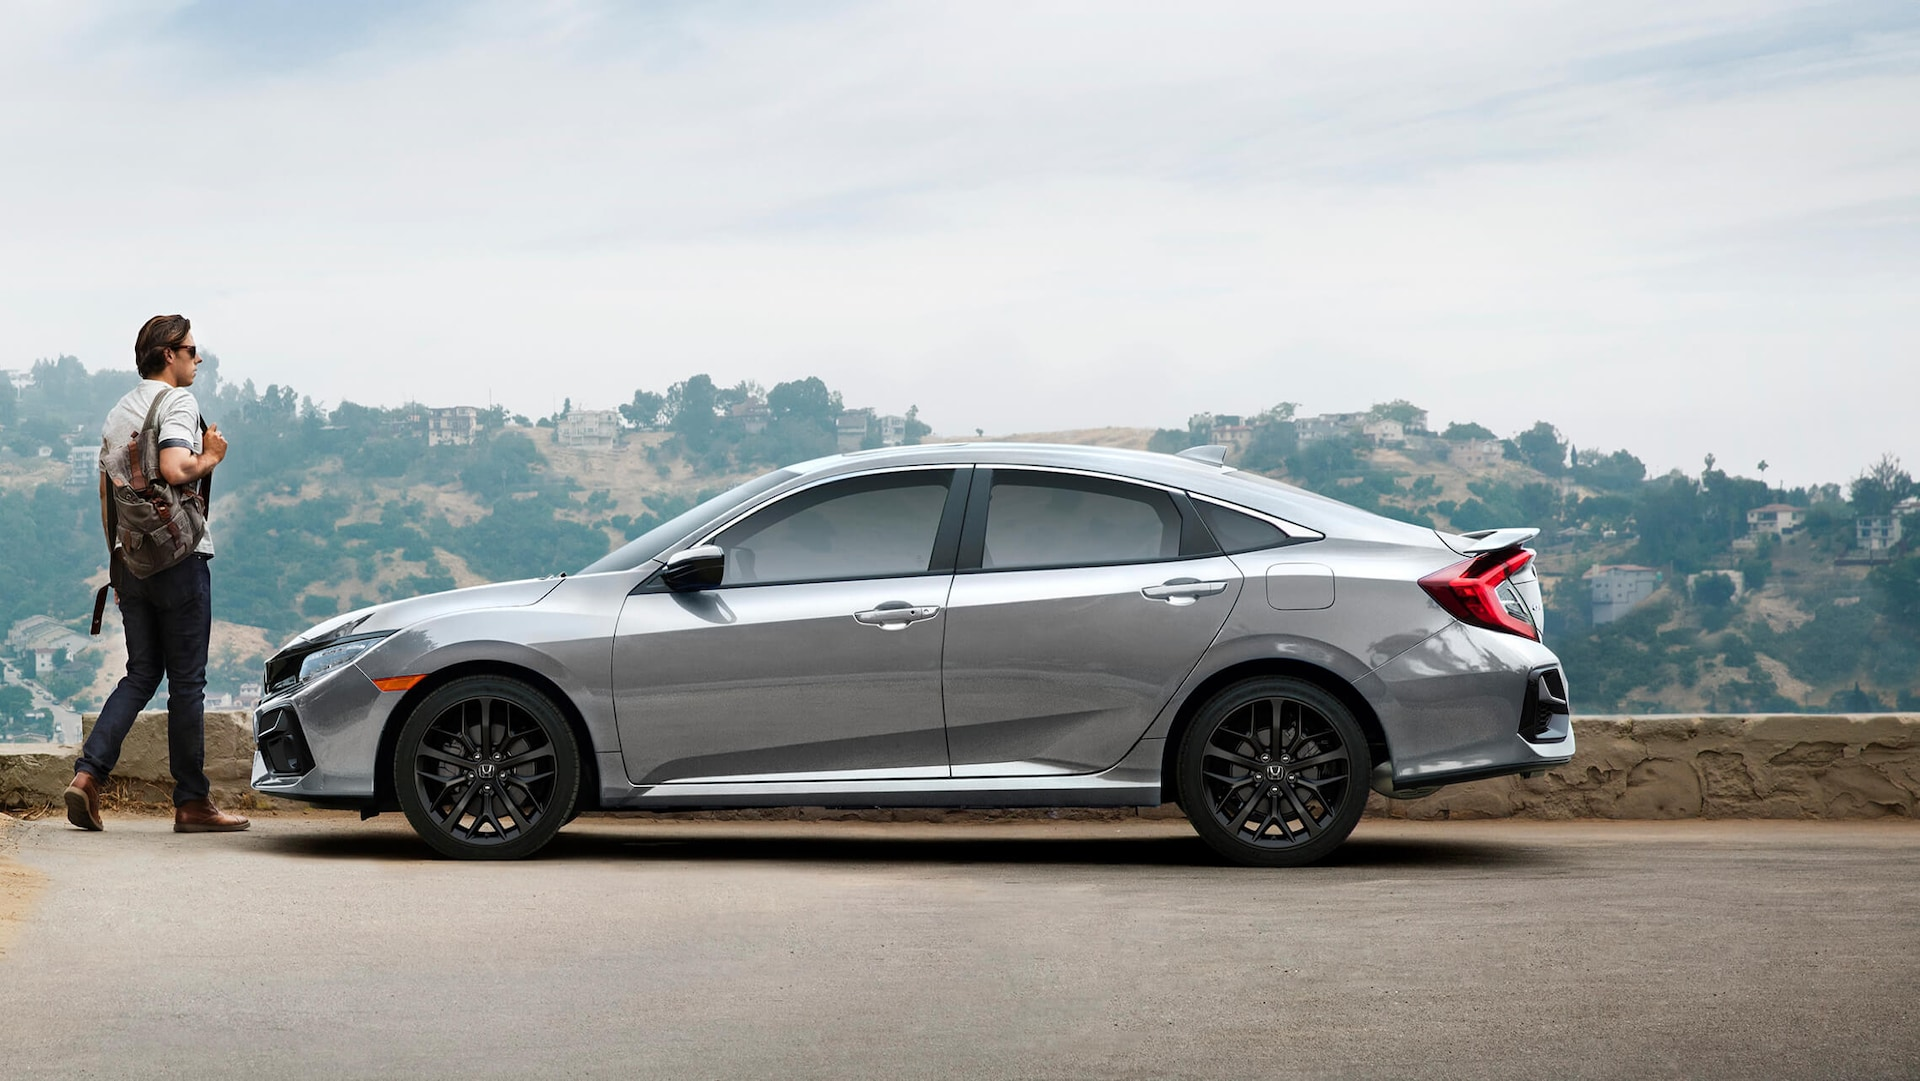 Driver's side view of 2020 Honda Civic Si Sedan in Lunar Silver Metallic parked on the side of a road with a mountain view.